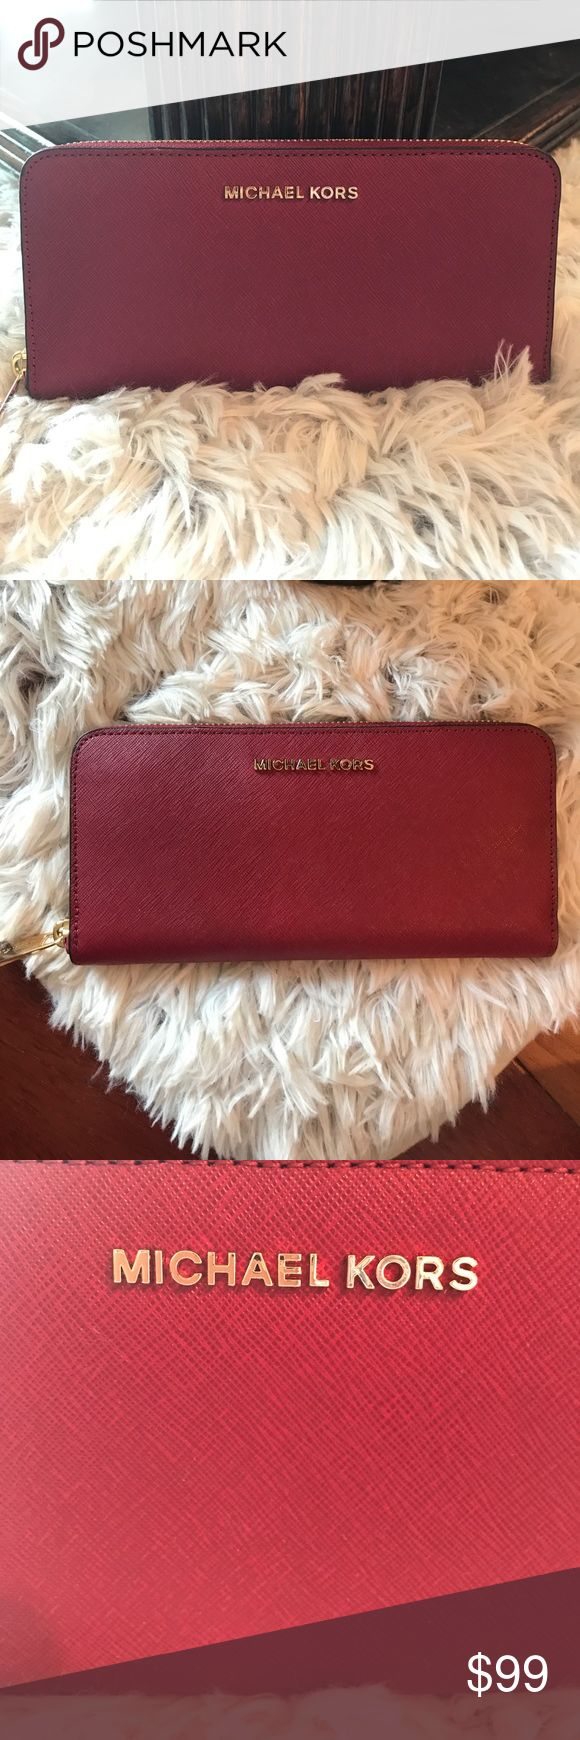 NWT Michael Kors Jet Set Travel Wallet Brand new with tags Michael Kors Jet Set Travel Continental Wallet. Color is cherry 🍒 Michael Kors Bags Wallets